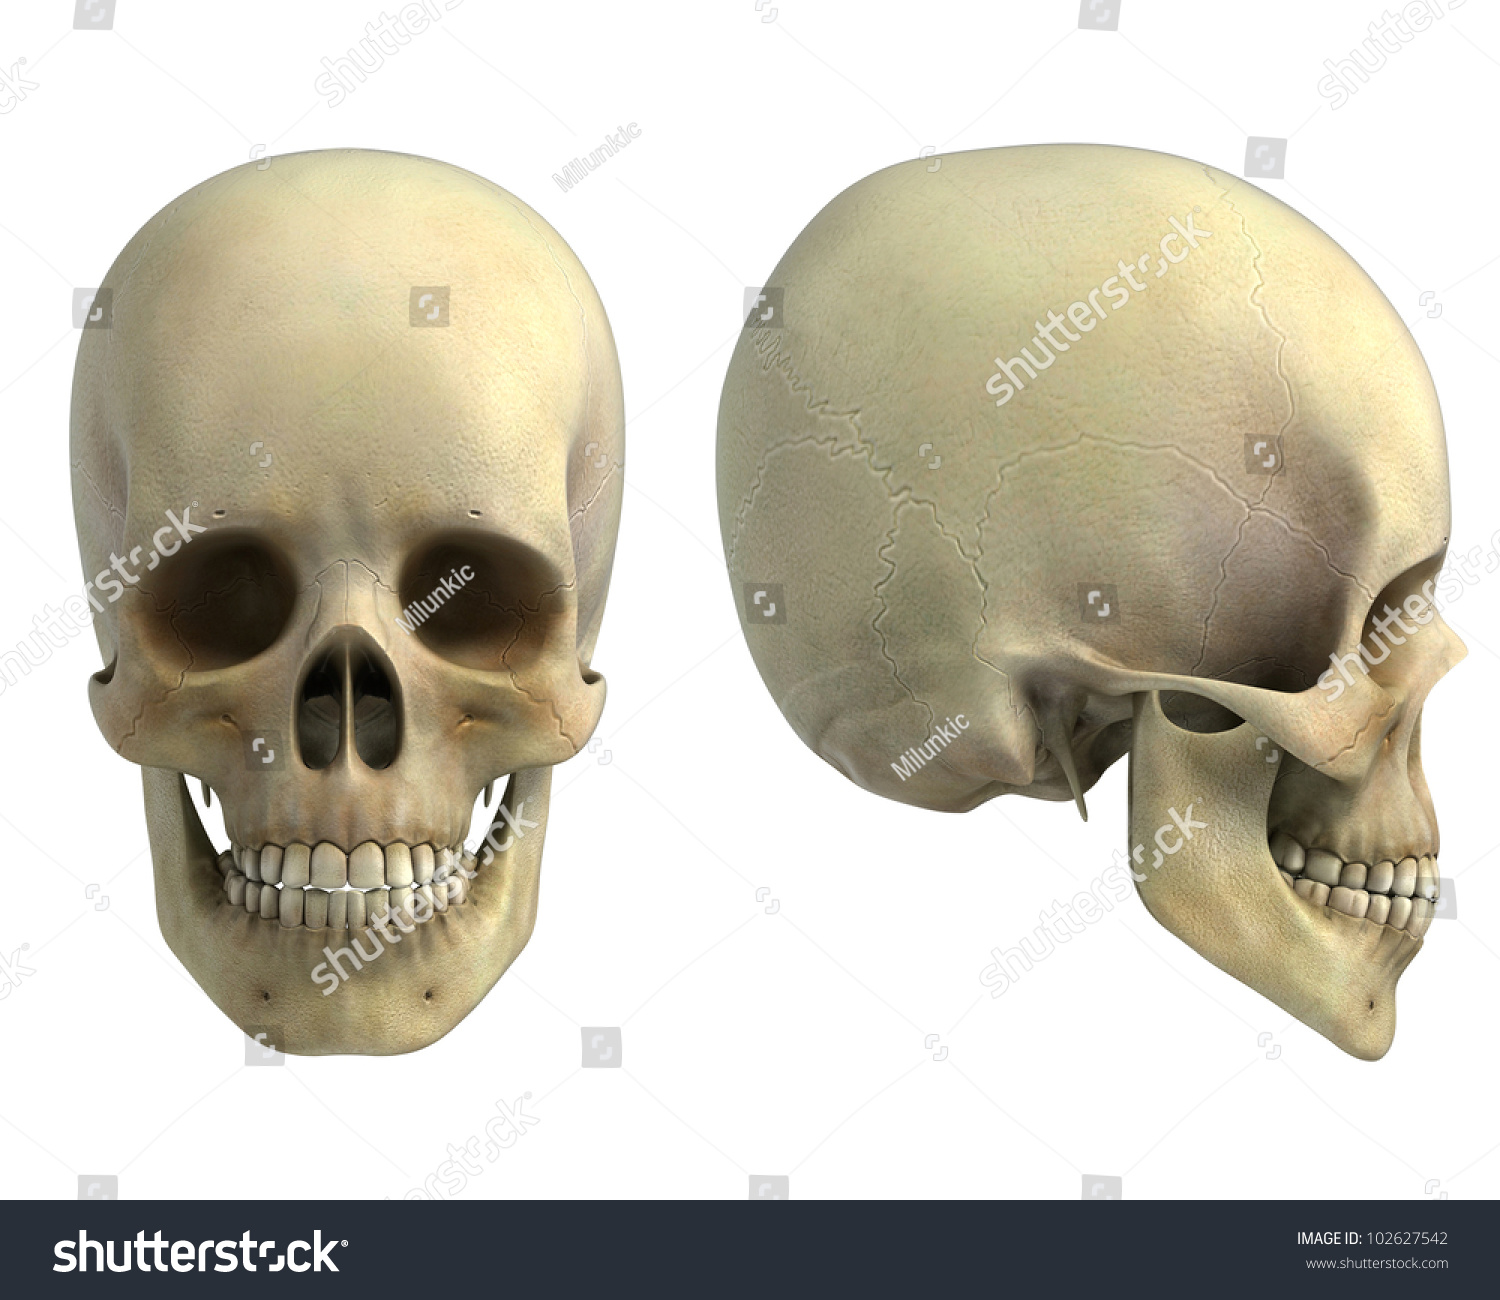 Royalty Free Stock Illustration Of Human Skull Front Side View